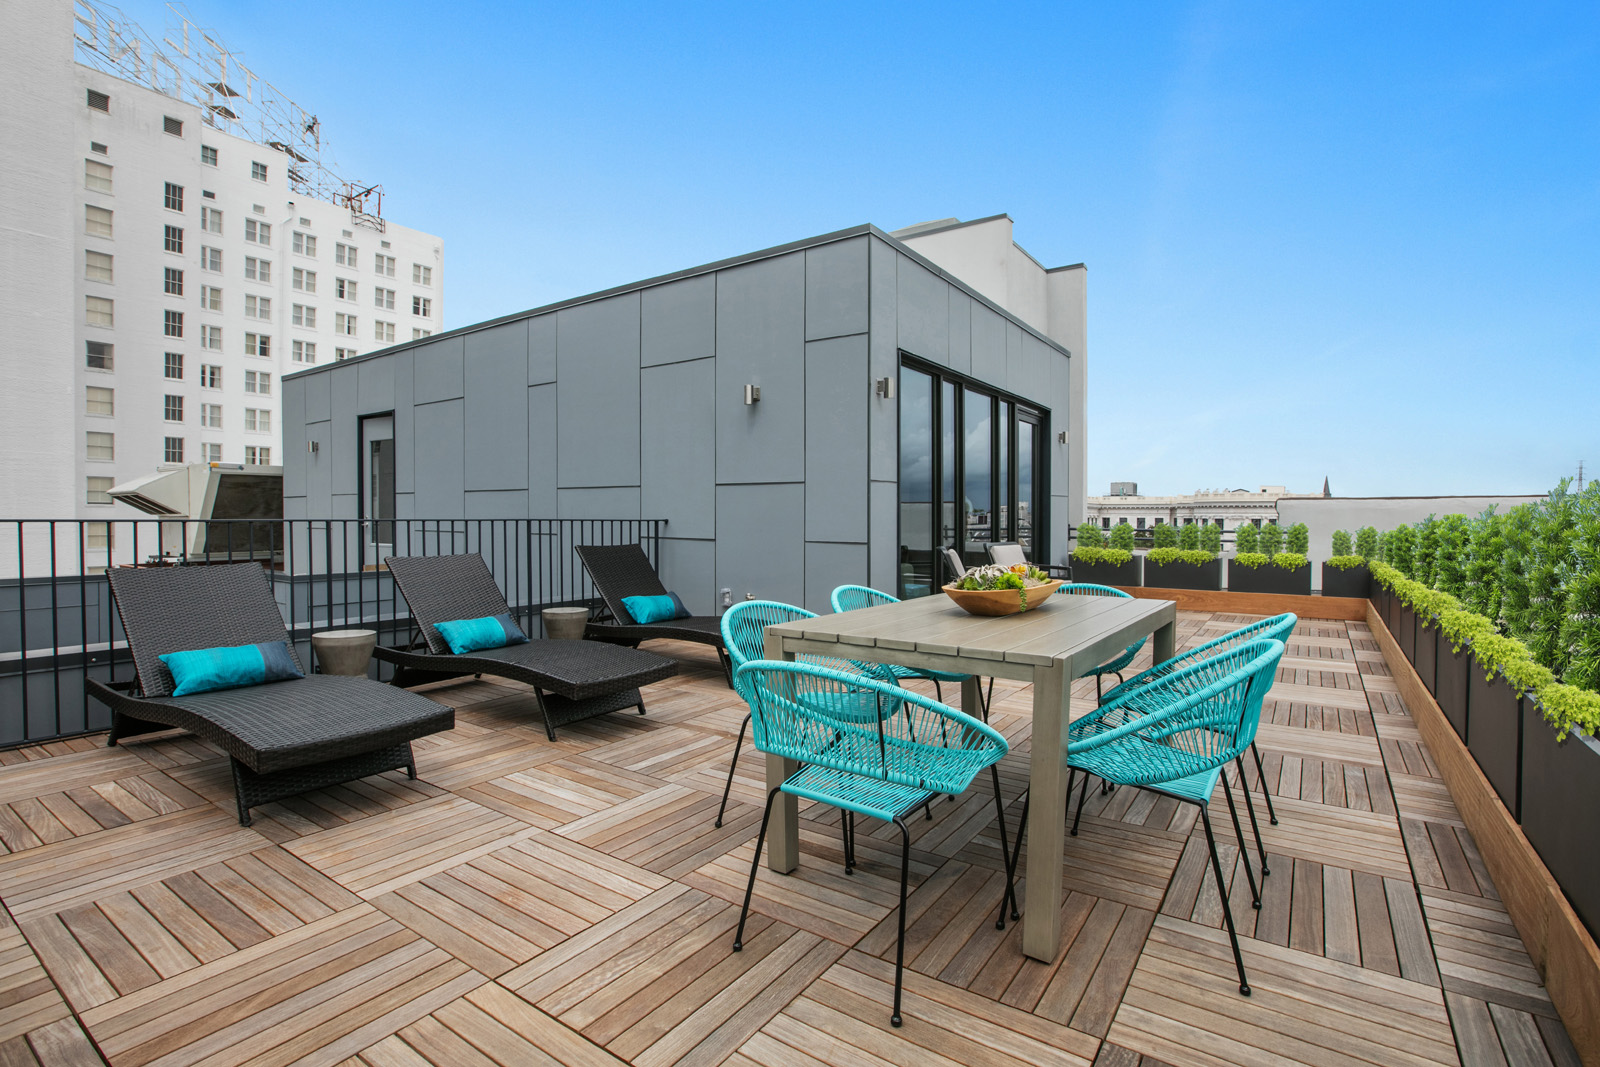 French Quarter Rooftop Apartment